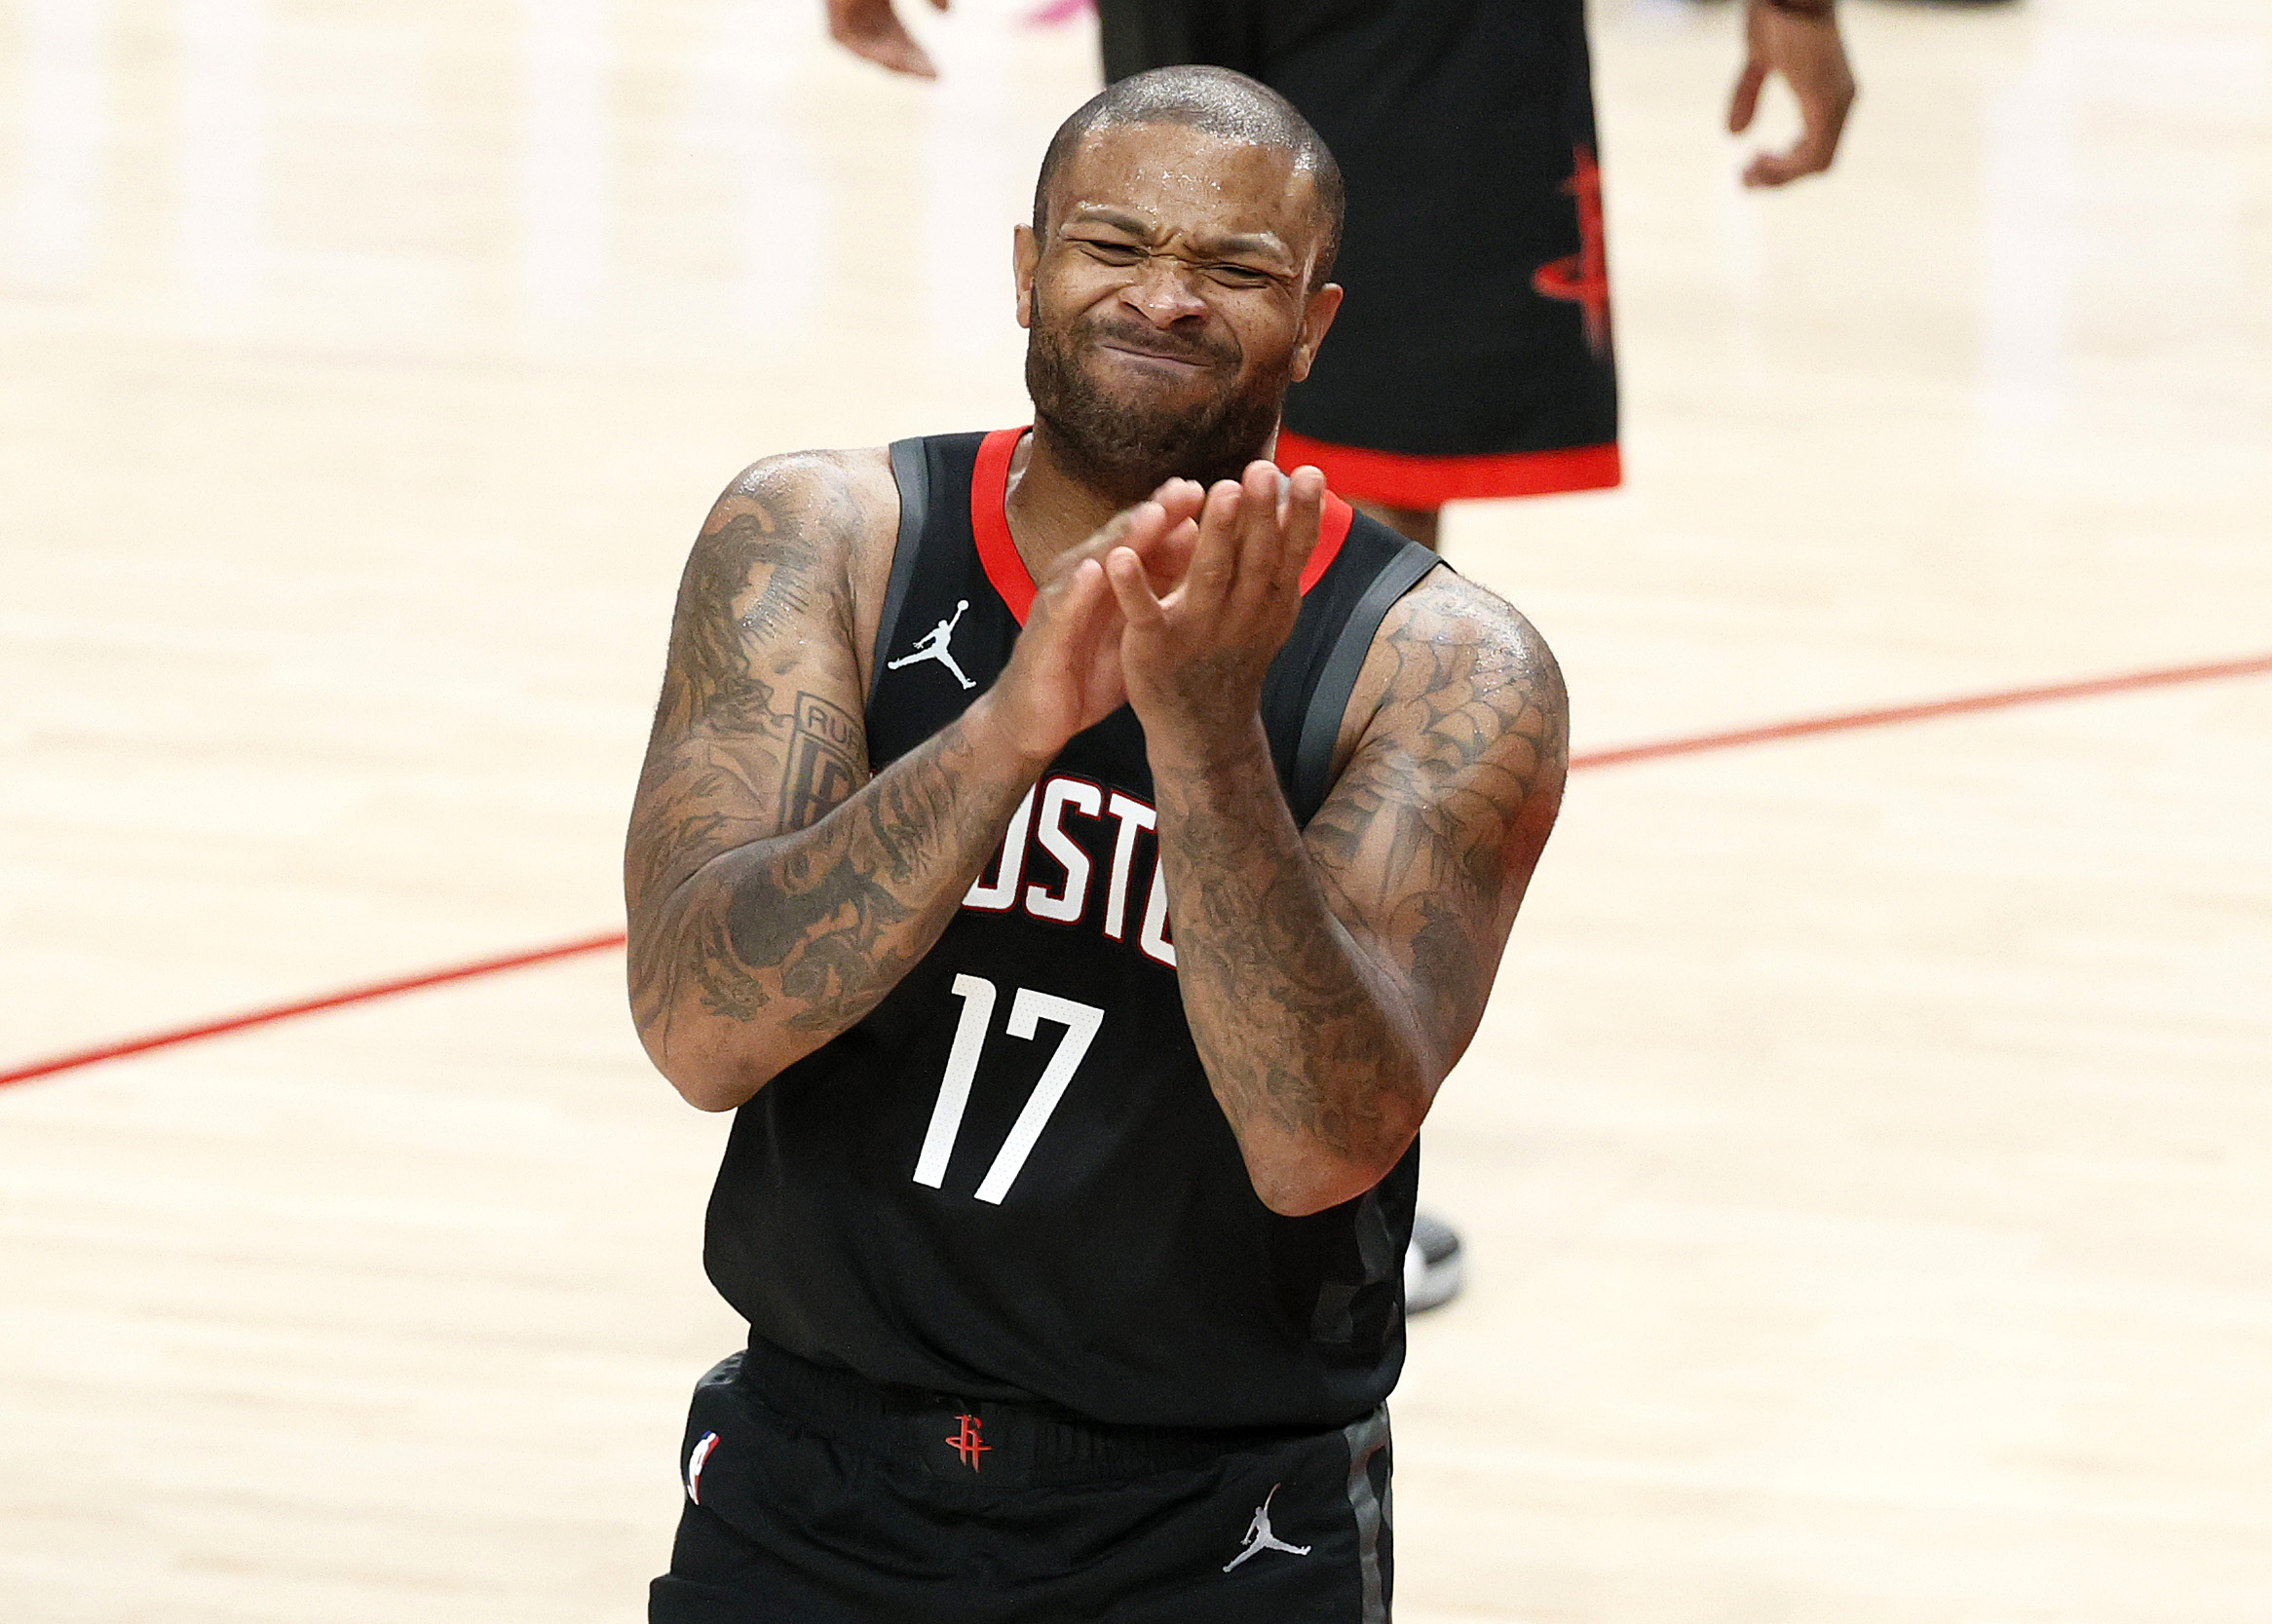 PORTLAND, OREGON - DECEMBER 26: P.J. Tucker #17 of the Houston Rockets reacts after he is called for a foul against the Portland Trail Blazers during the third quarter at Moda Center on December 26, 2020 in Portland, Oregon. NOTE TO USER: User expressly acknowledges and agrees that, by downloading and/or using this photograph, user is consenting to the terms and conditions of the Getty Images License Agreement.